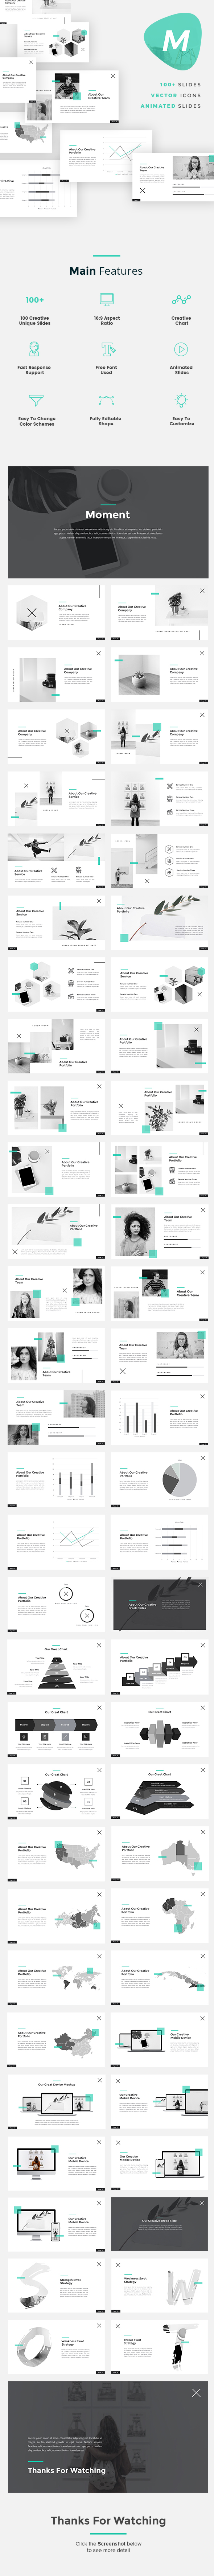 Moment - Minimalist Google Slides Template - Google Slides Presentation Templates